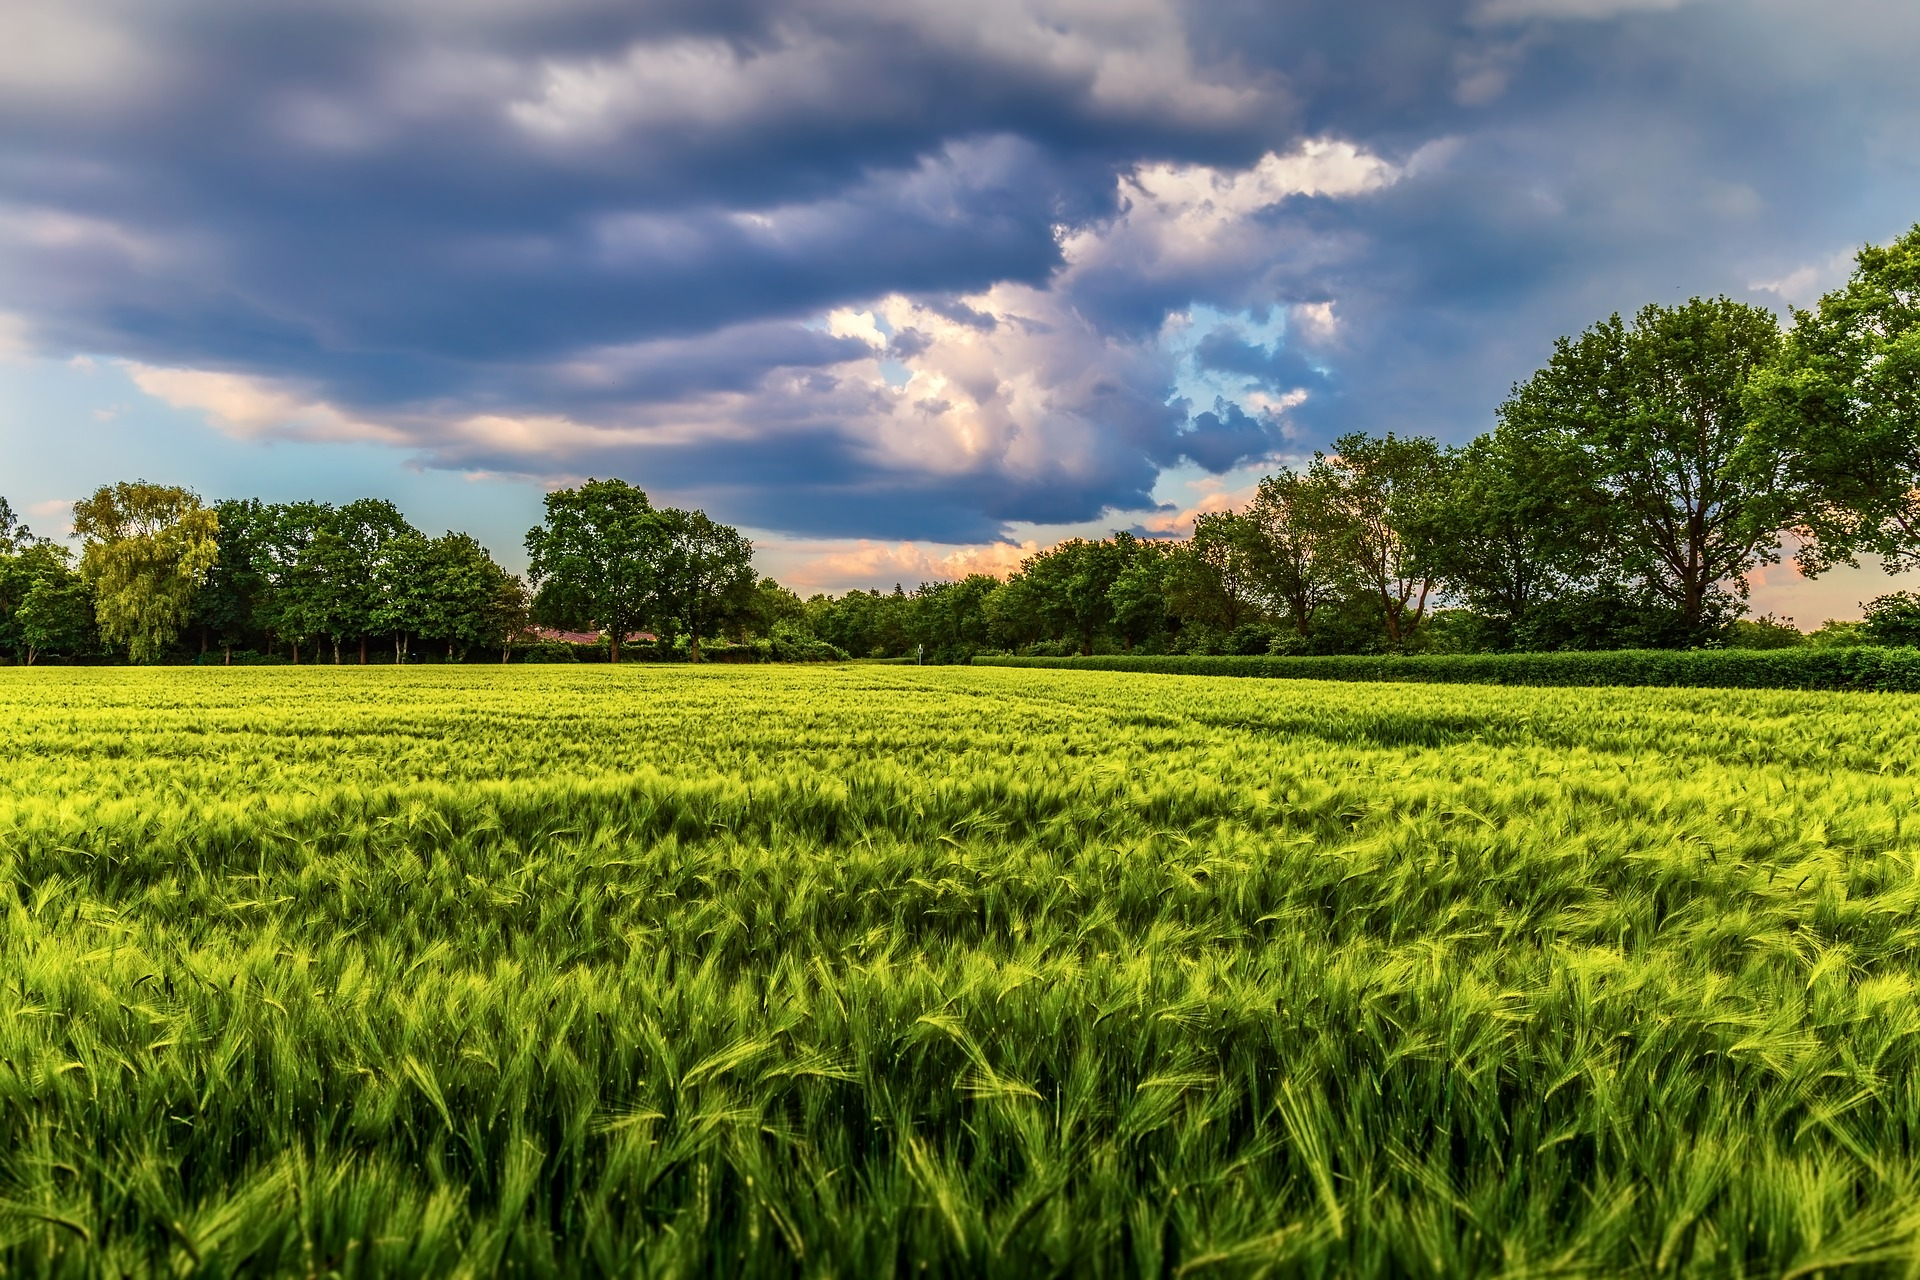 Grassy meadow with clouds